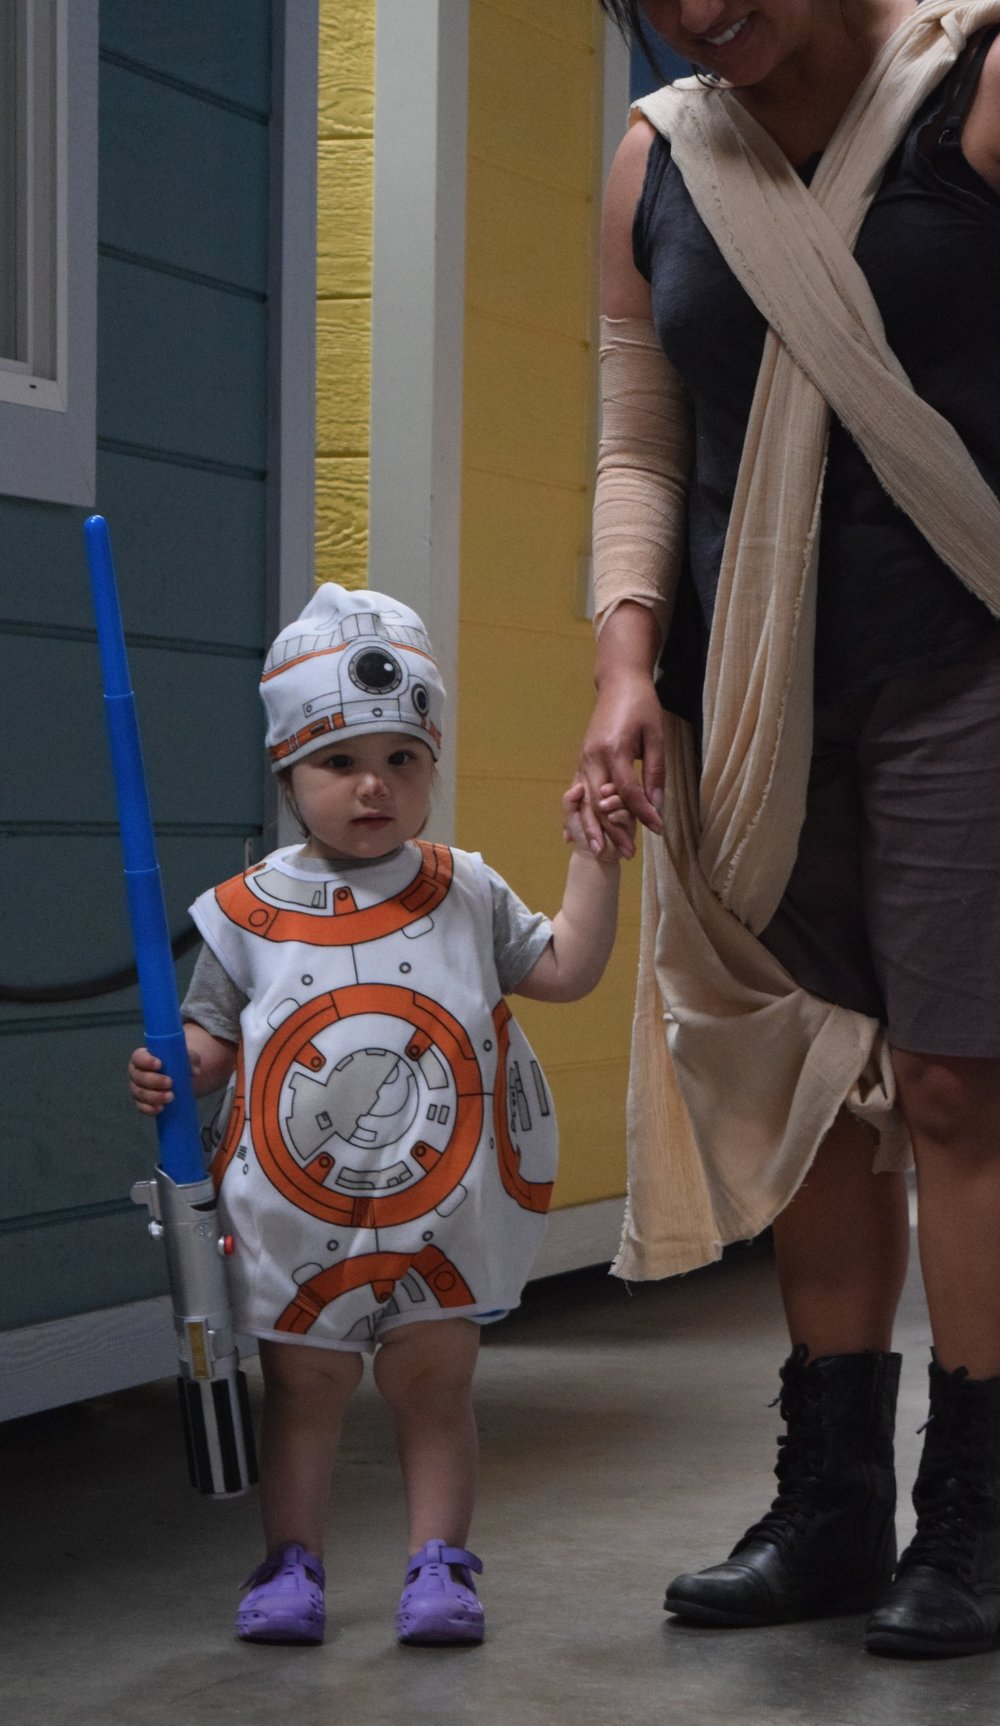 A tiny BB8 wielding a lightsaber